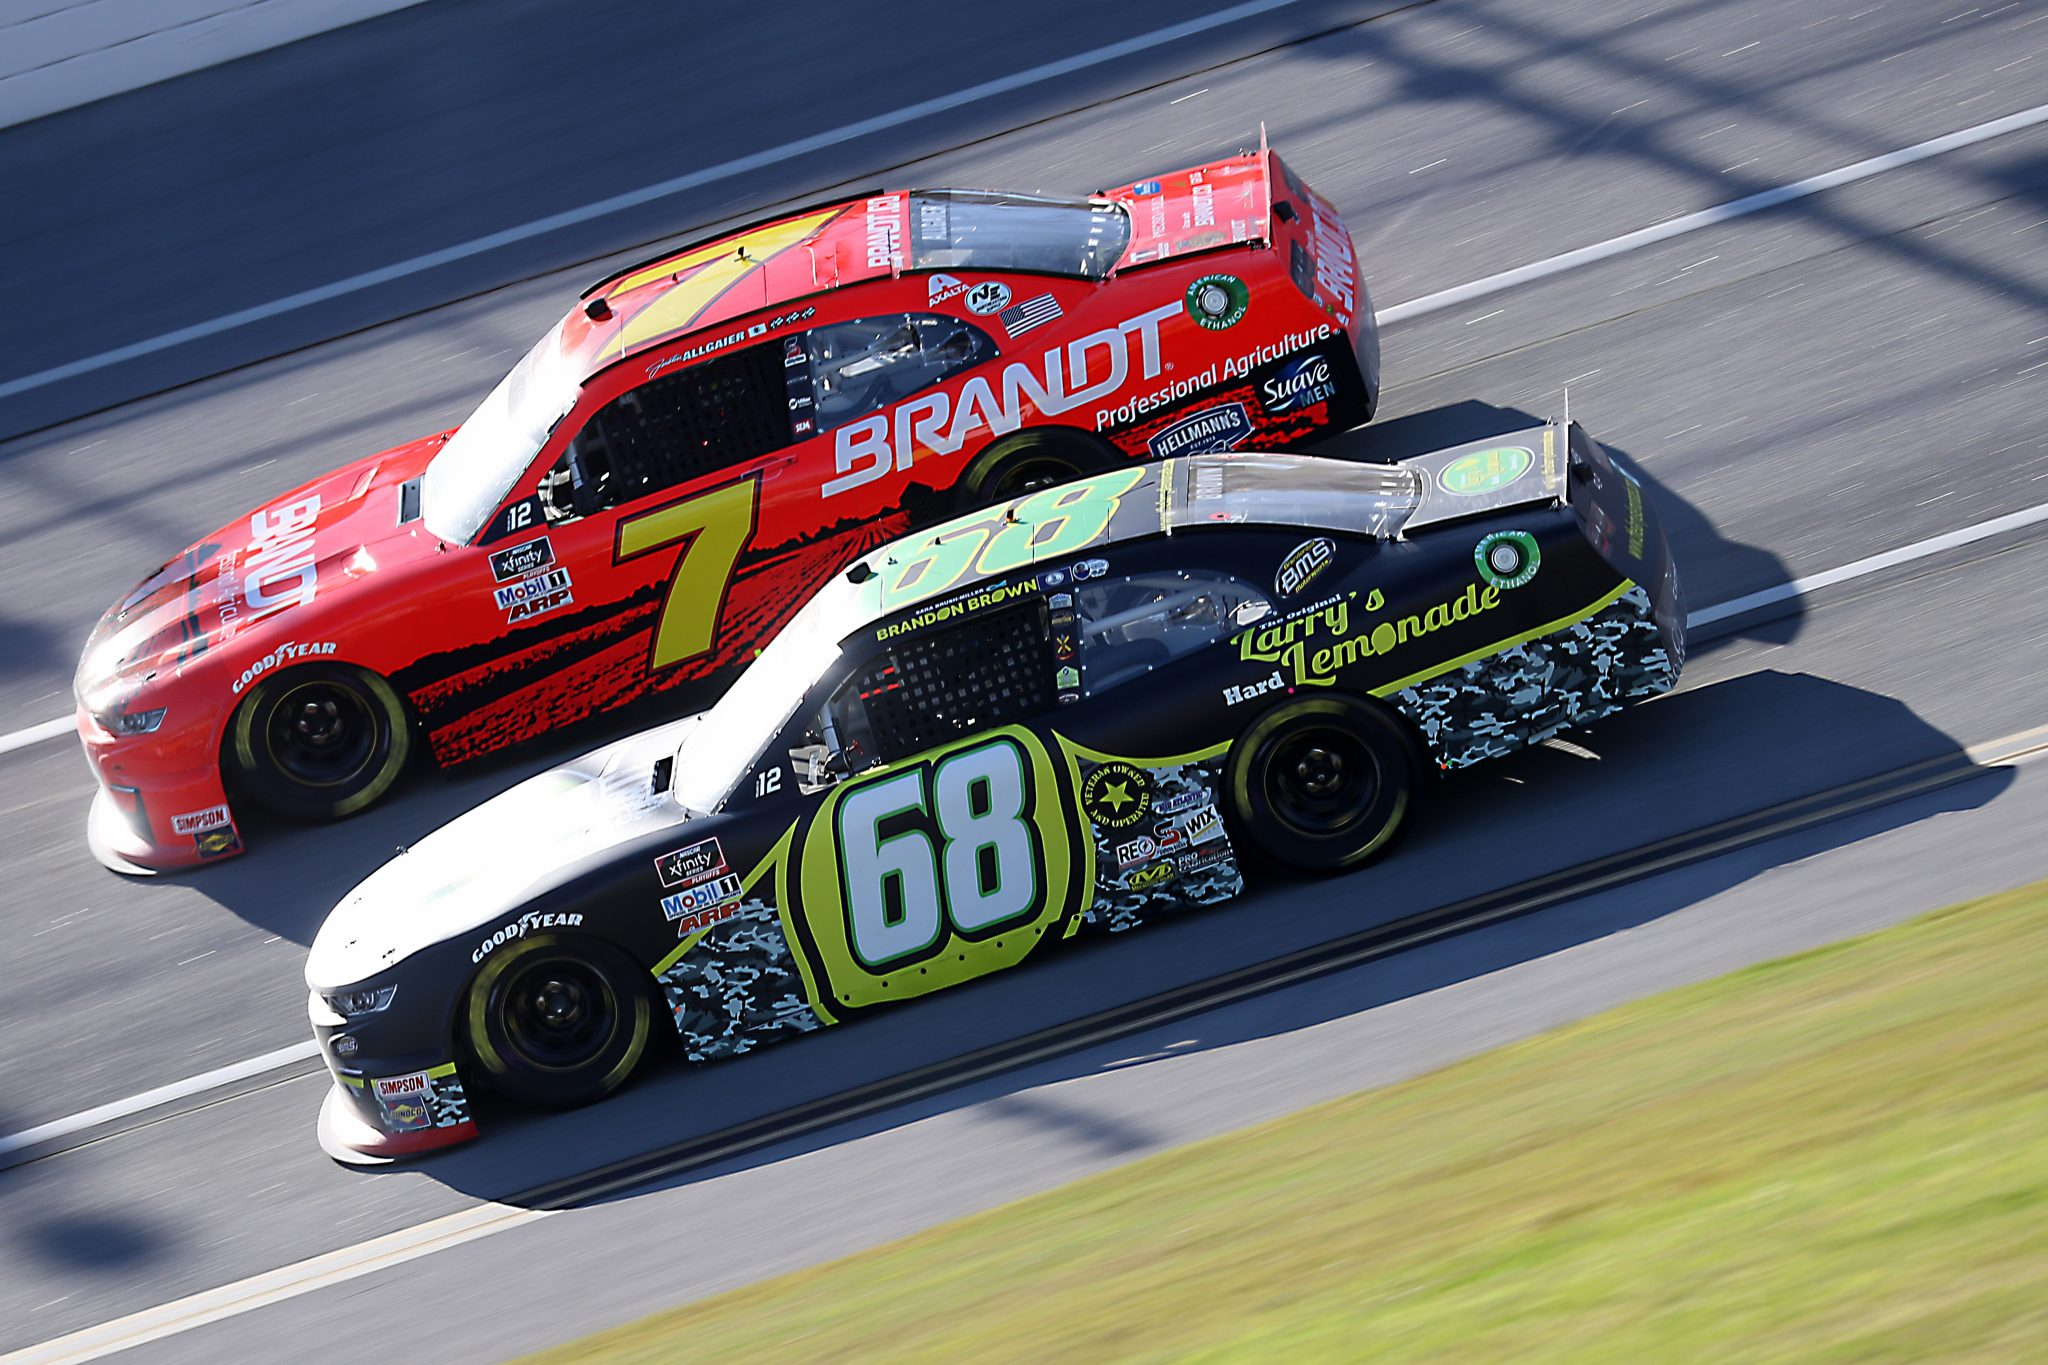 TALLADEGA, ALABAMA - OCTOBER 03: Justin Allgaier, driver of the #7 BRANDT Chevrolet, and Brandon Brown, driver of the #68 Original Larry's Hard Lemonade Chevrolet, race during the NASCAR Xfinity Series Ag-Pro 300 at Talladega Superspeedway on October 03, 2020 in Talladega, Alabama. (Photo by Chris Graythen/Getty Images) | Getty Images